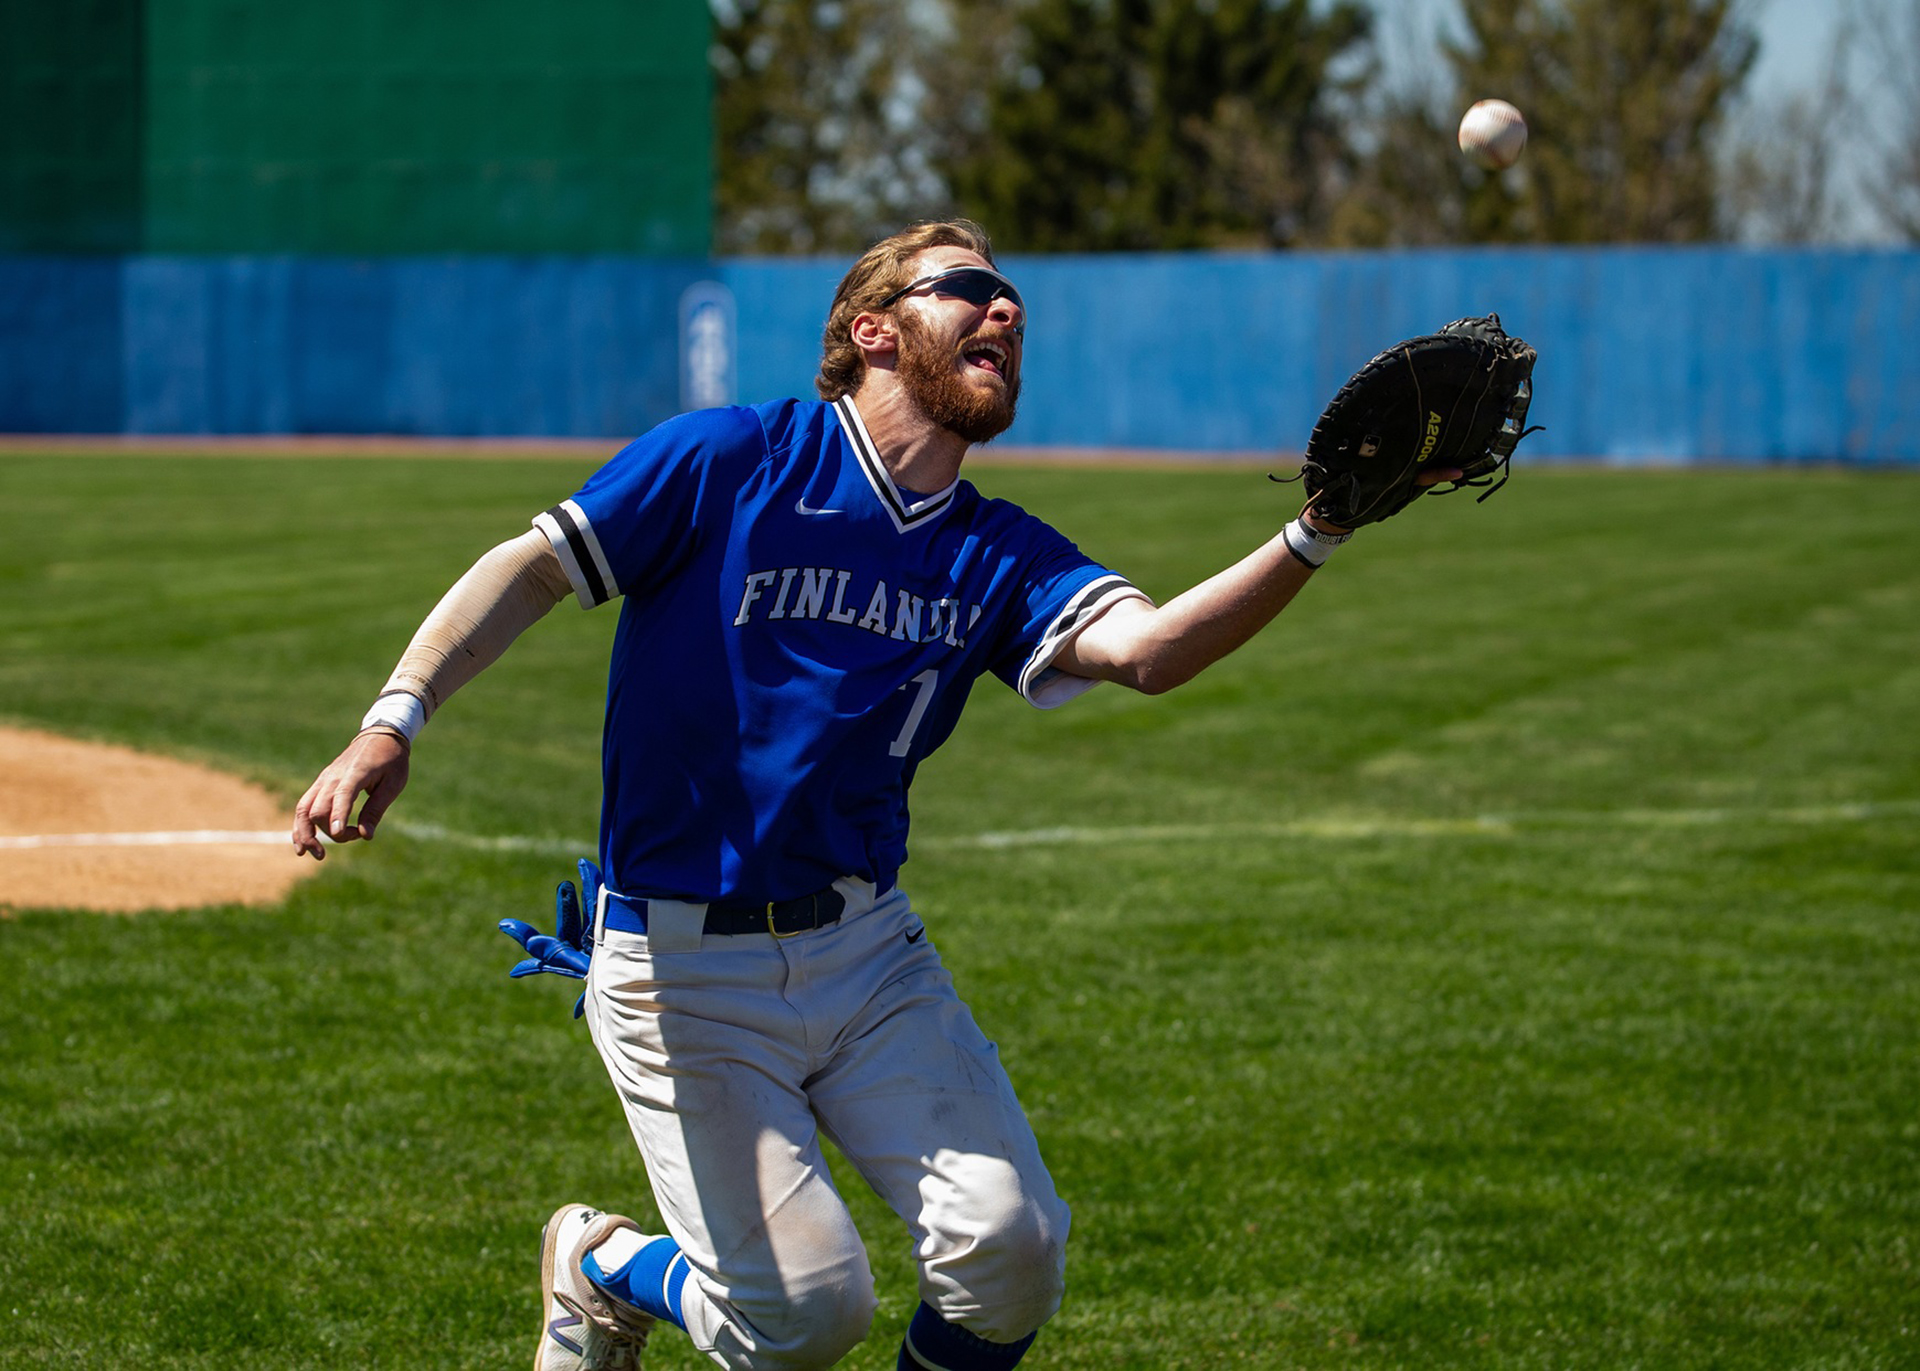 Nik Geiser Baseball Finlandia University Athletics